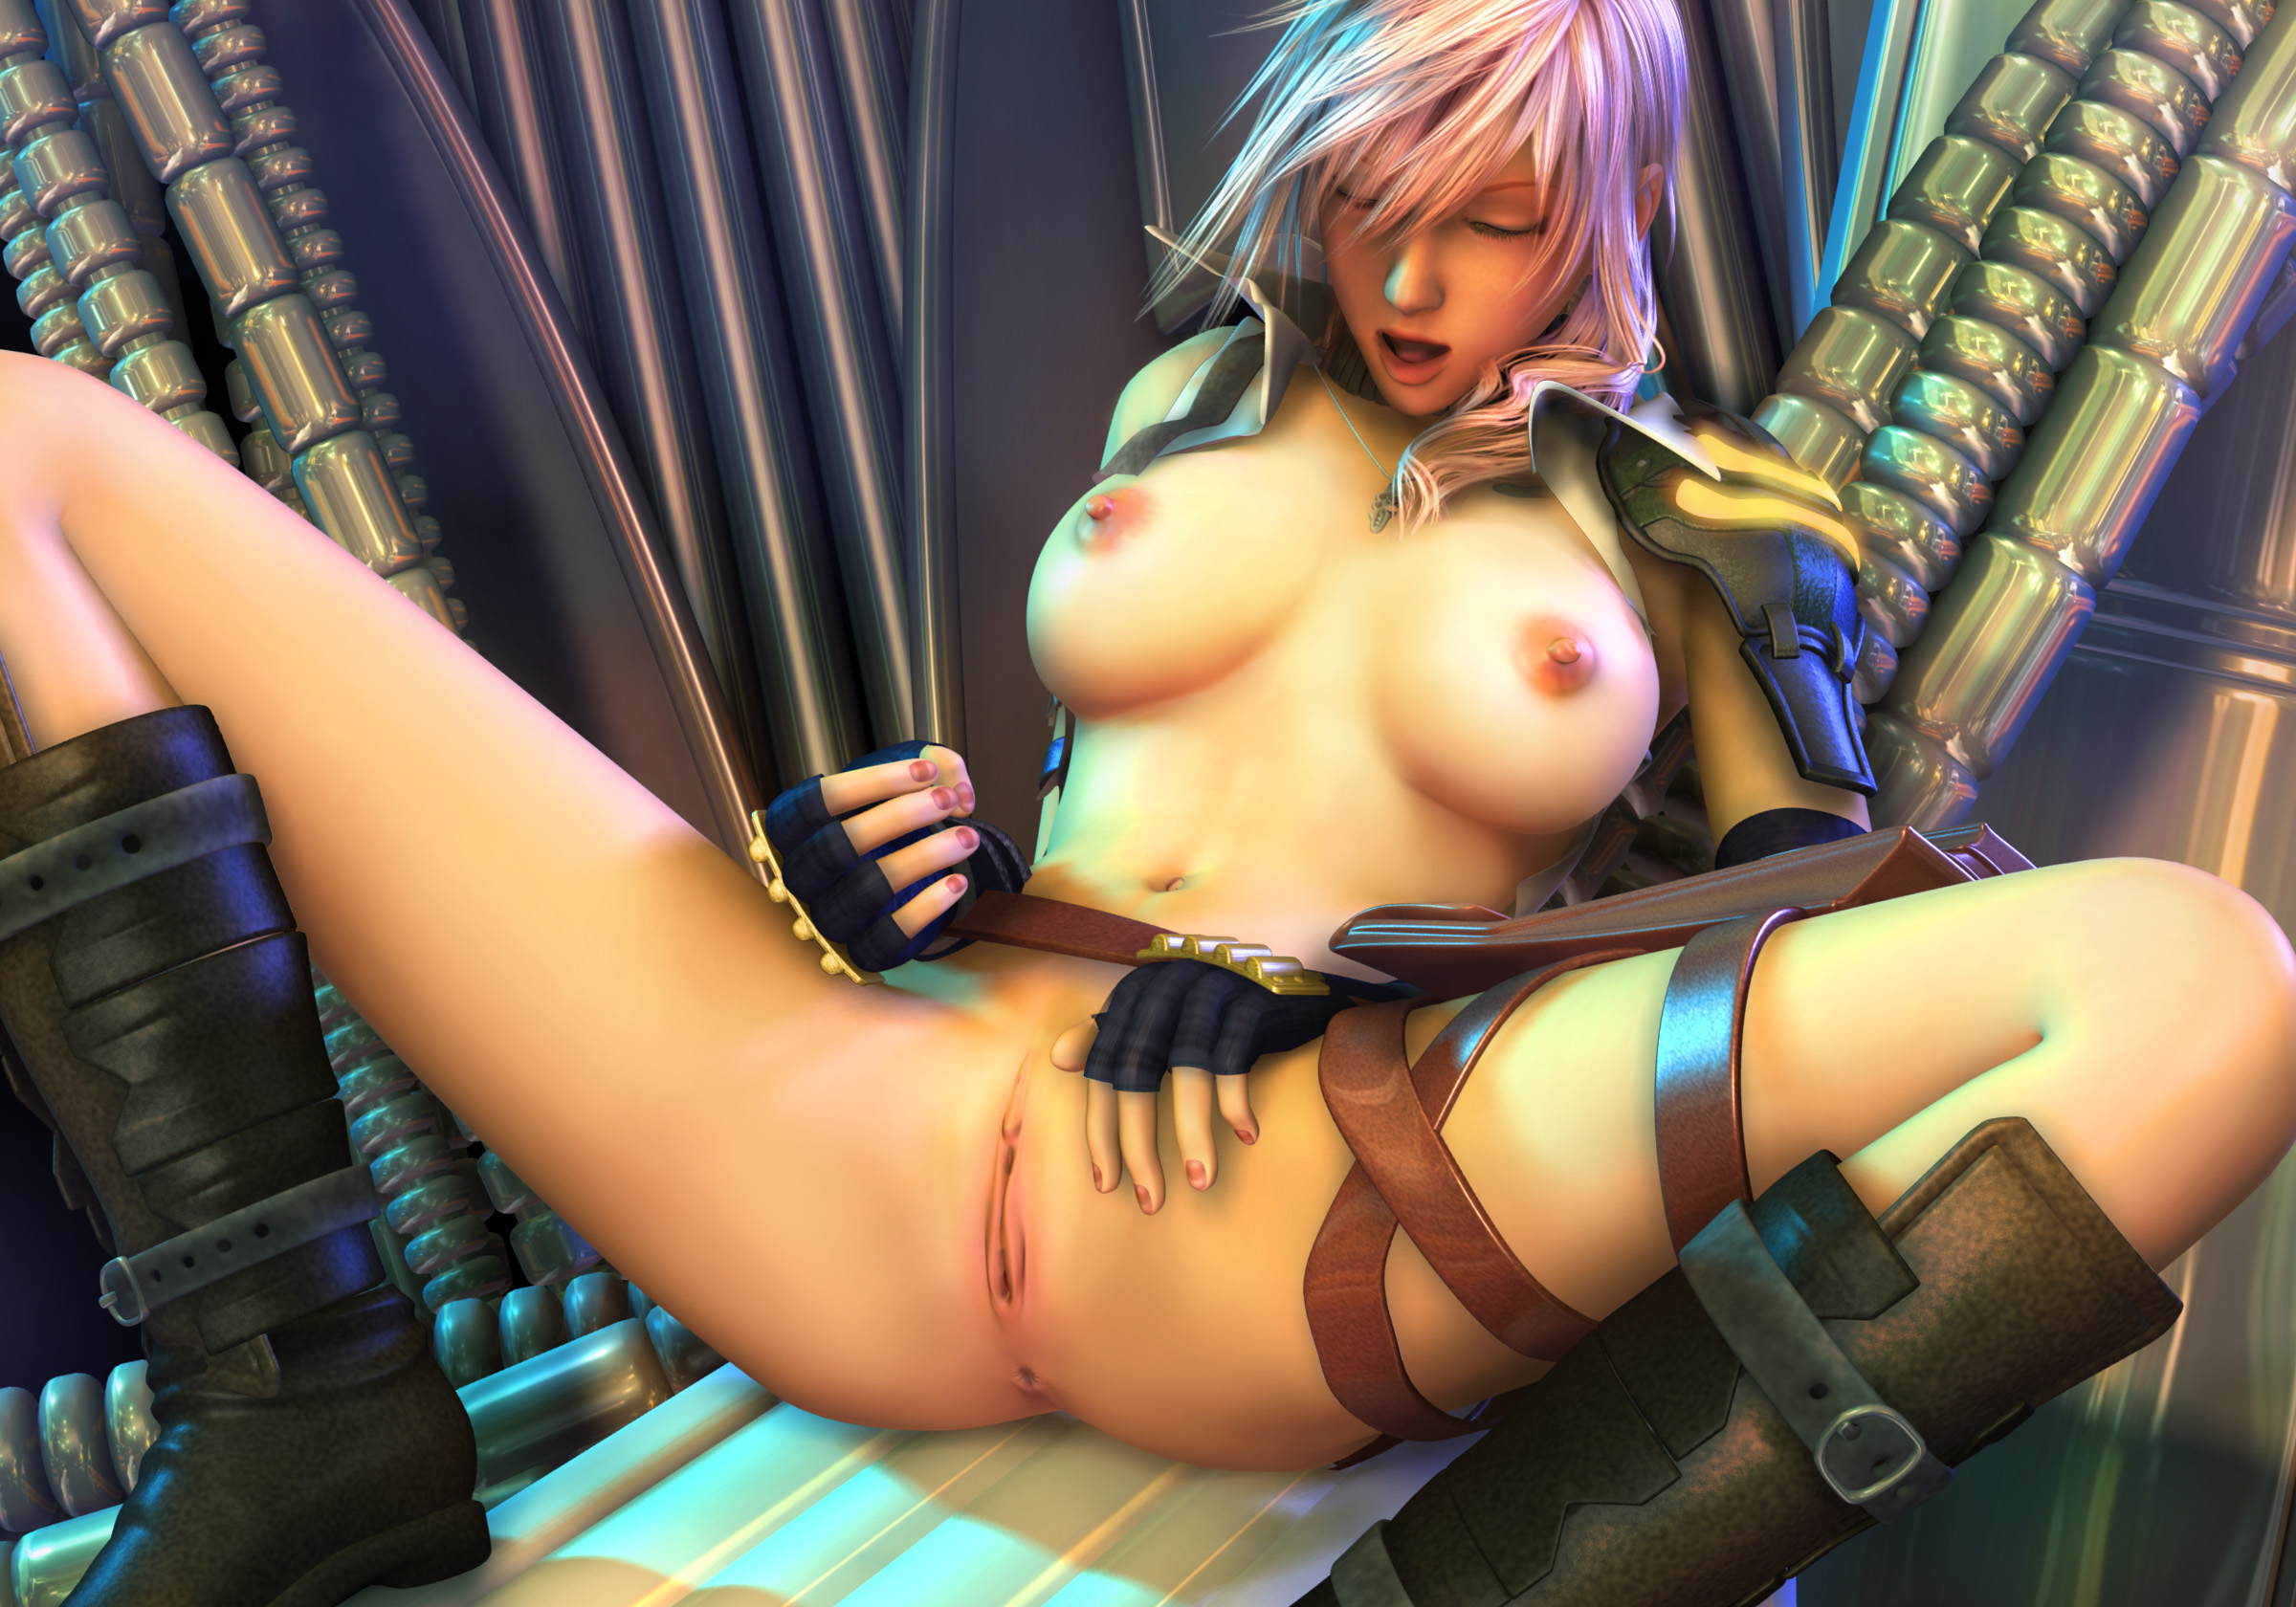 Final fantasy naked website adult models